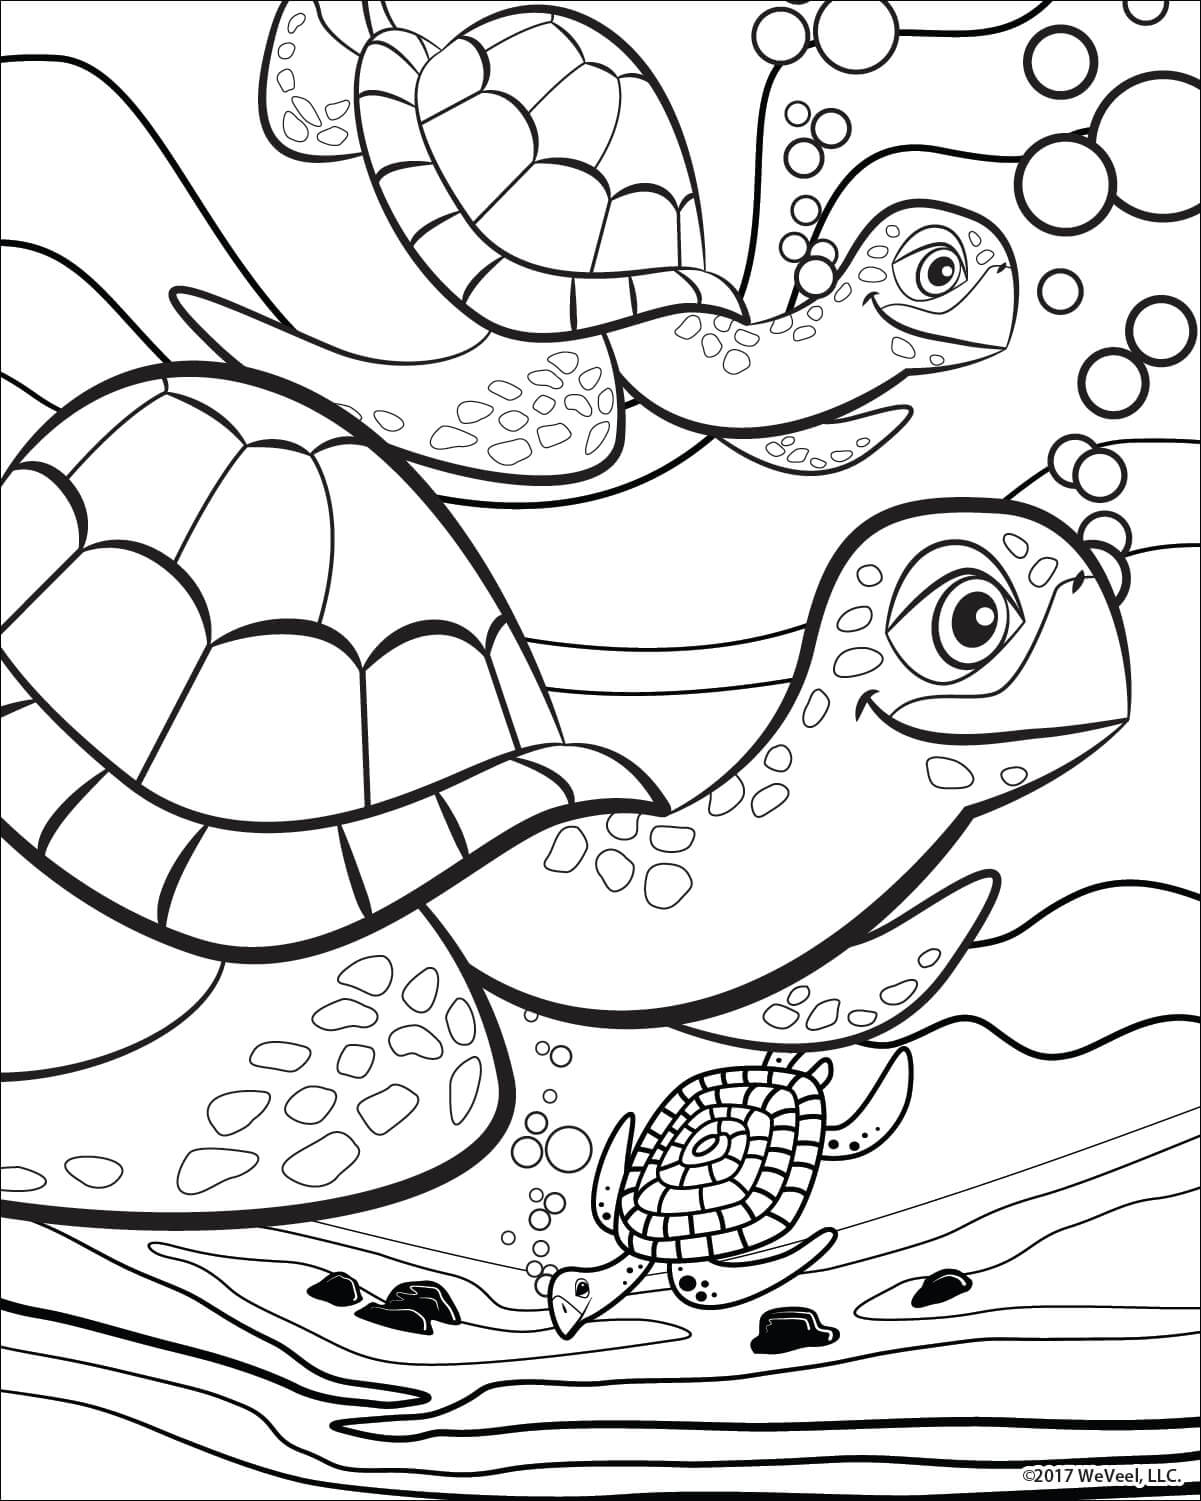 turtle colouring page kids